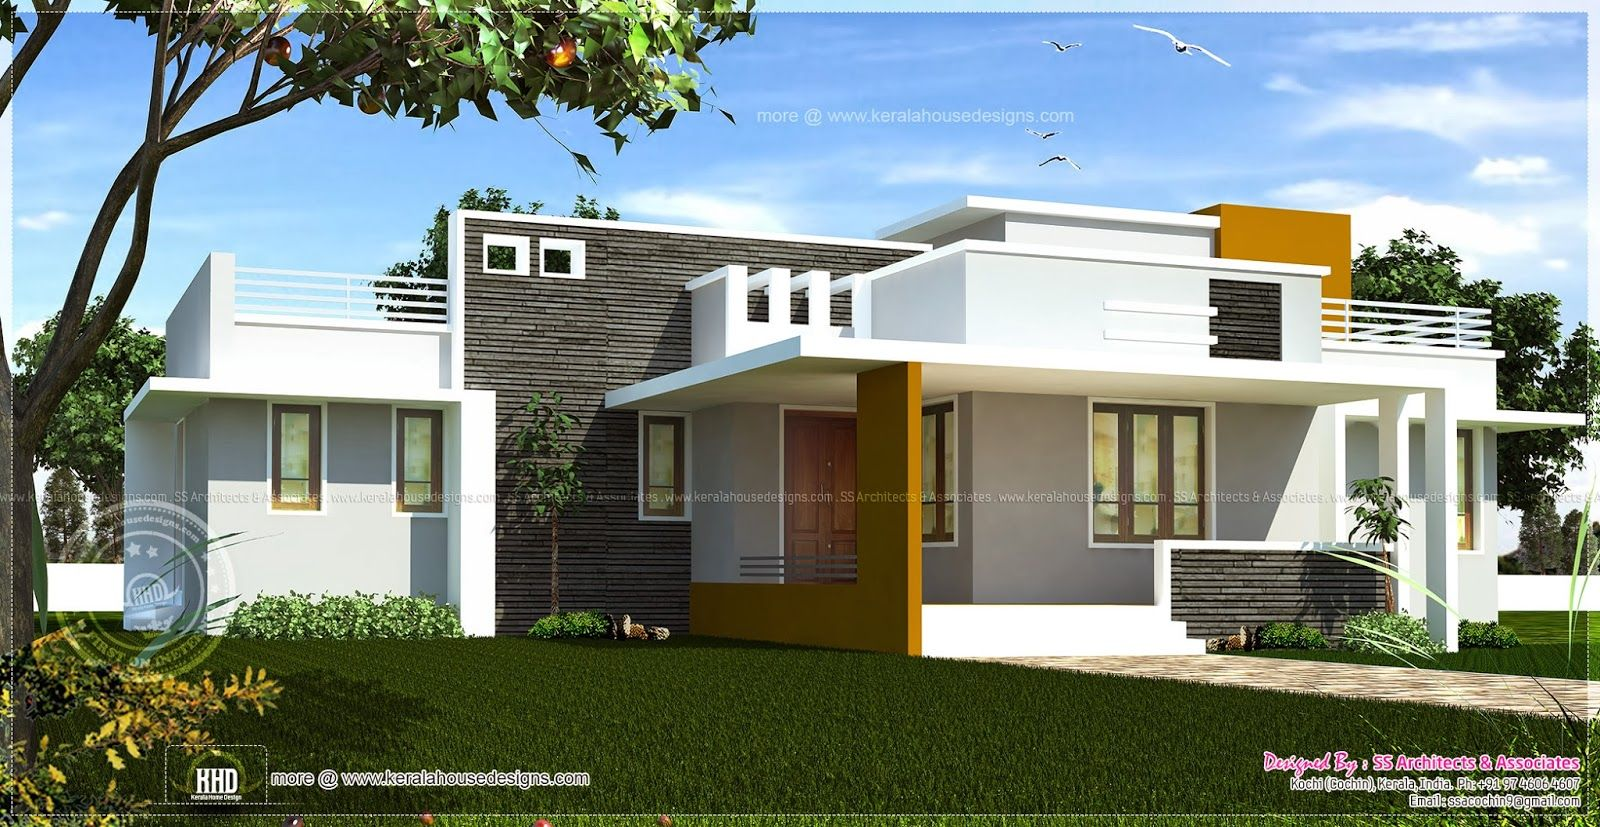 Excellent single home designs single floor contemporary for One floor modern house